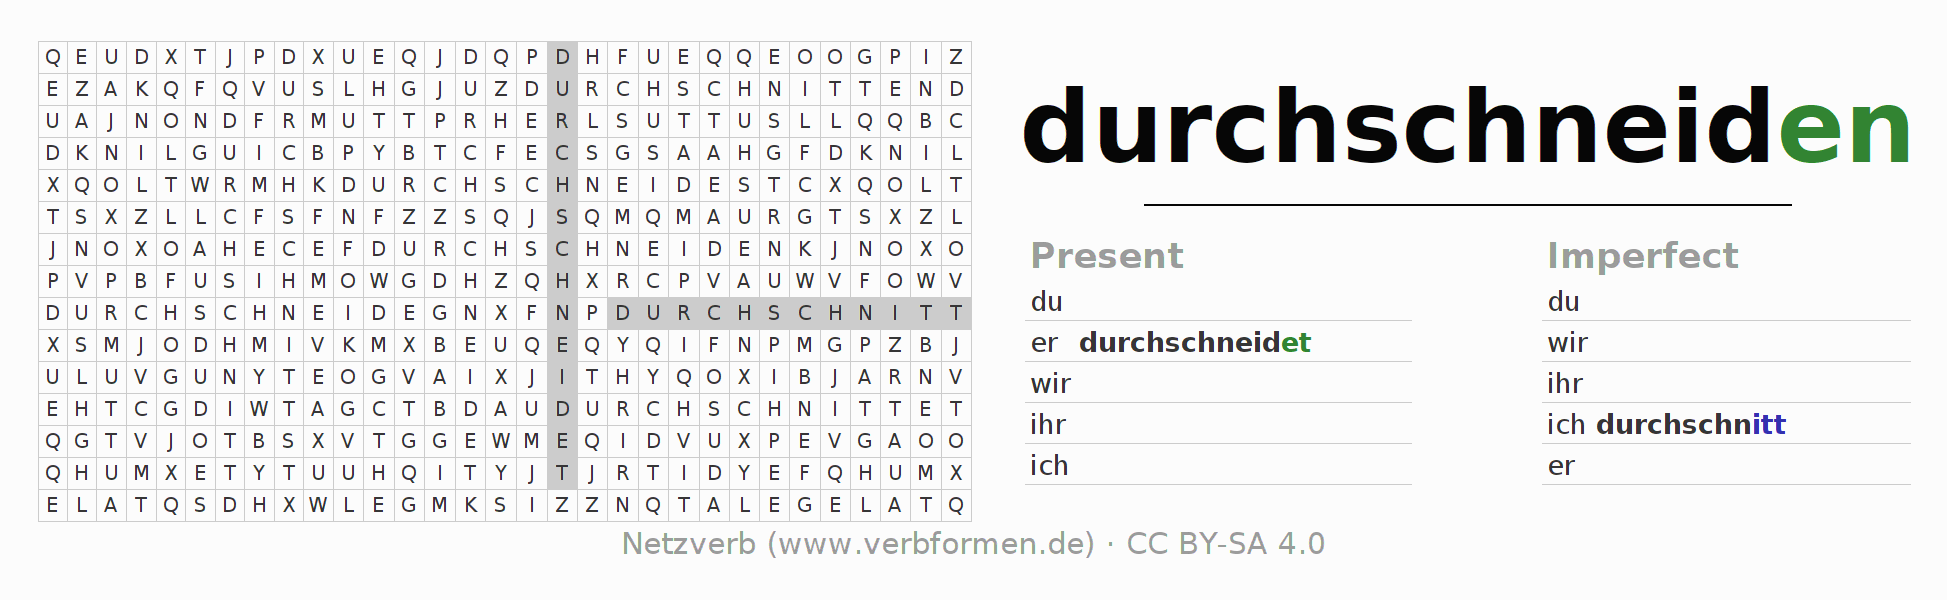 Word search puzzle for the conjugation of the verb durchschneiden